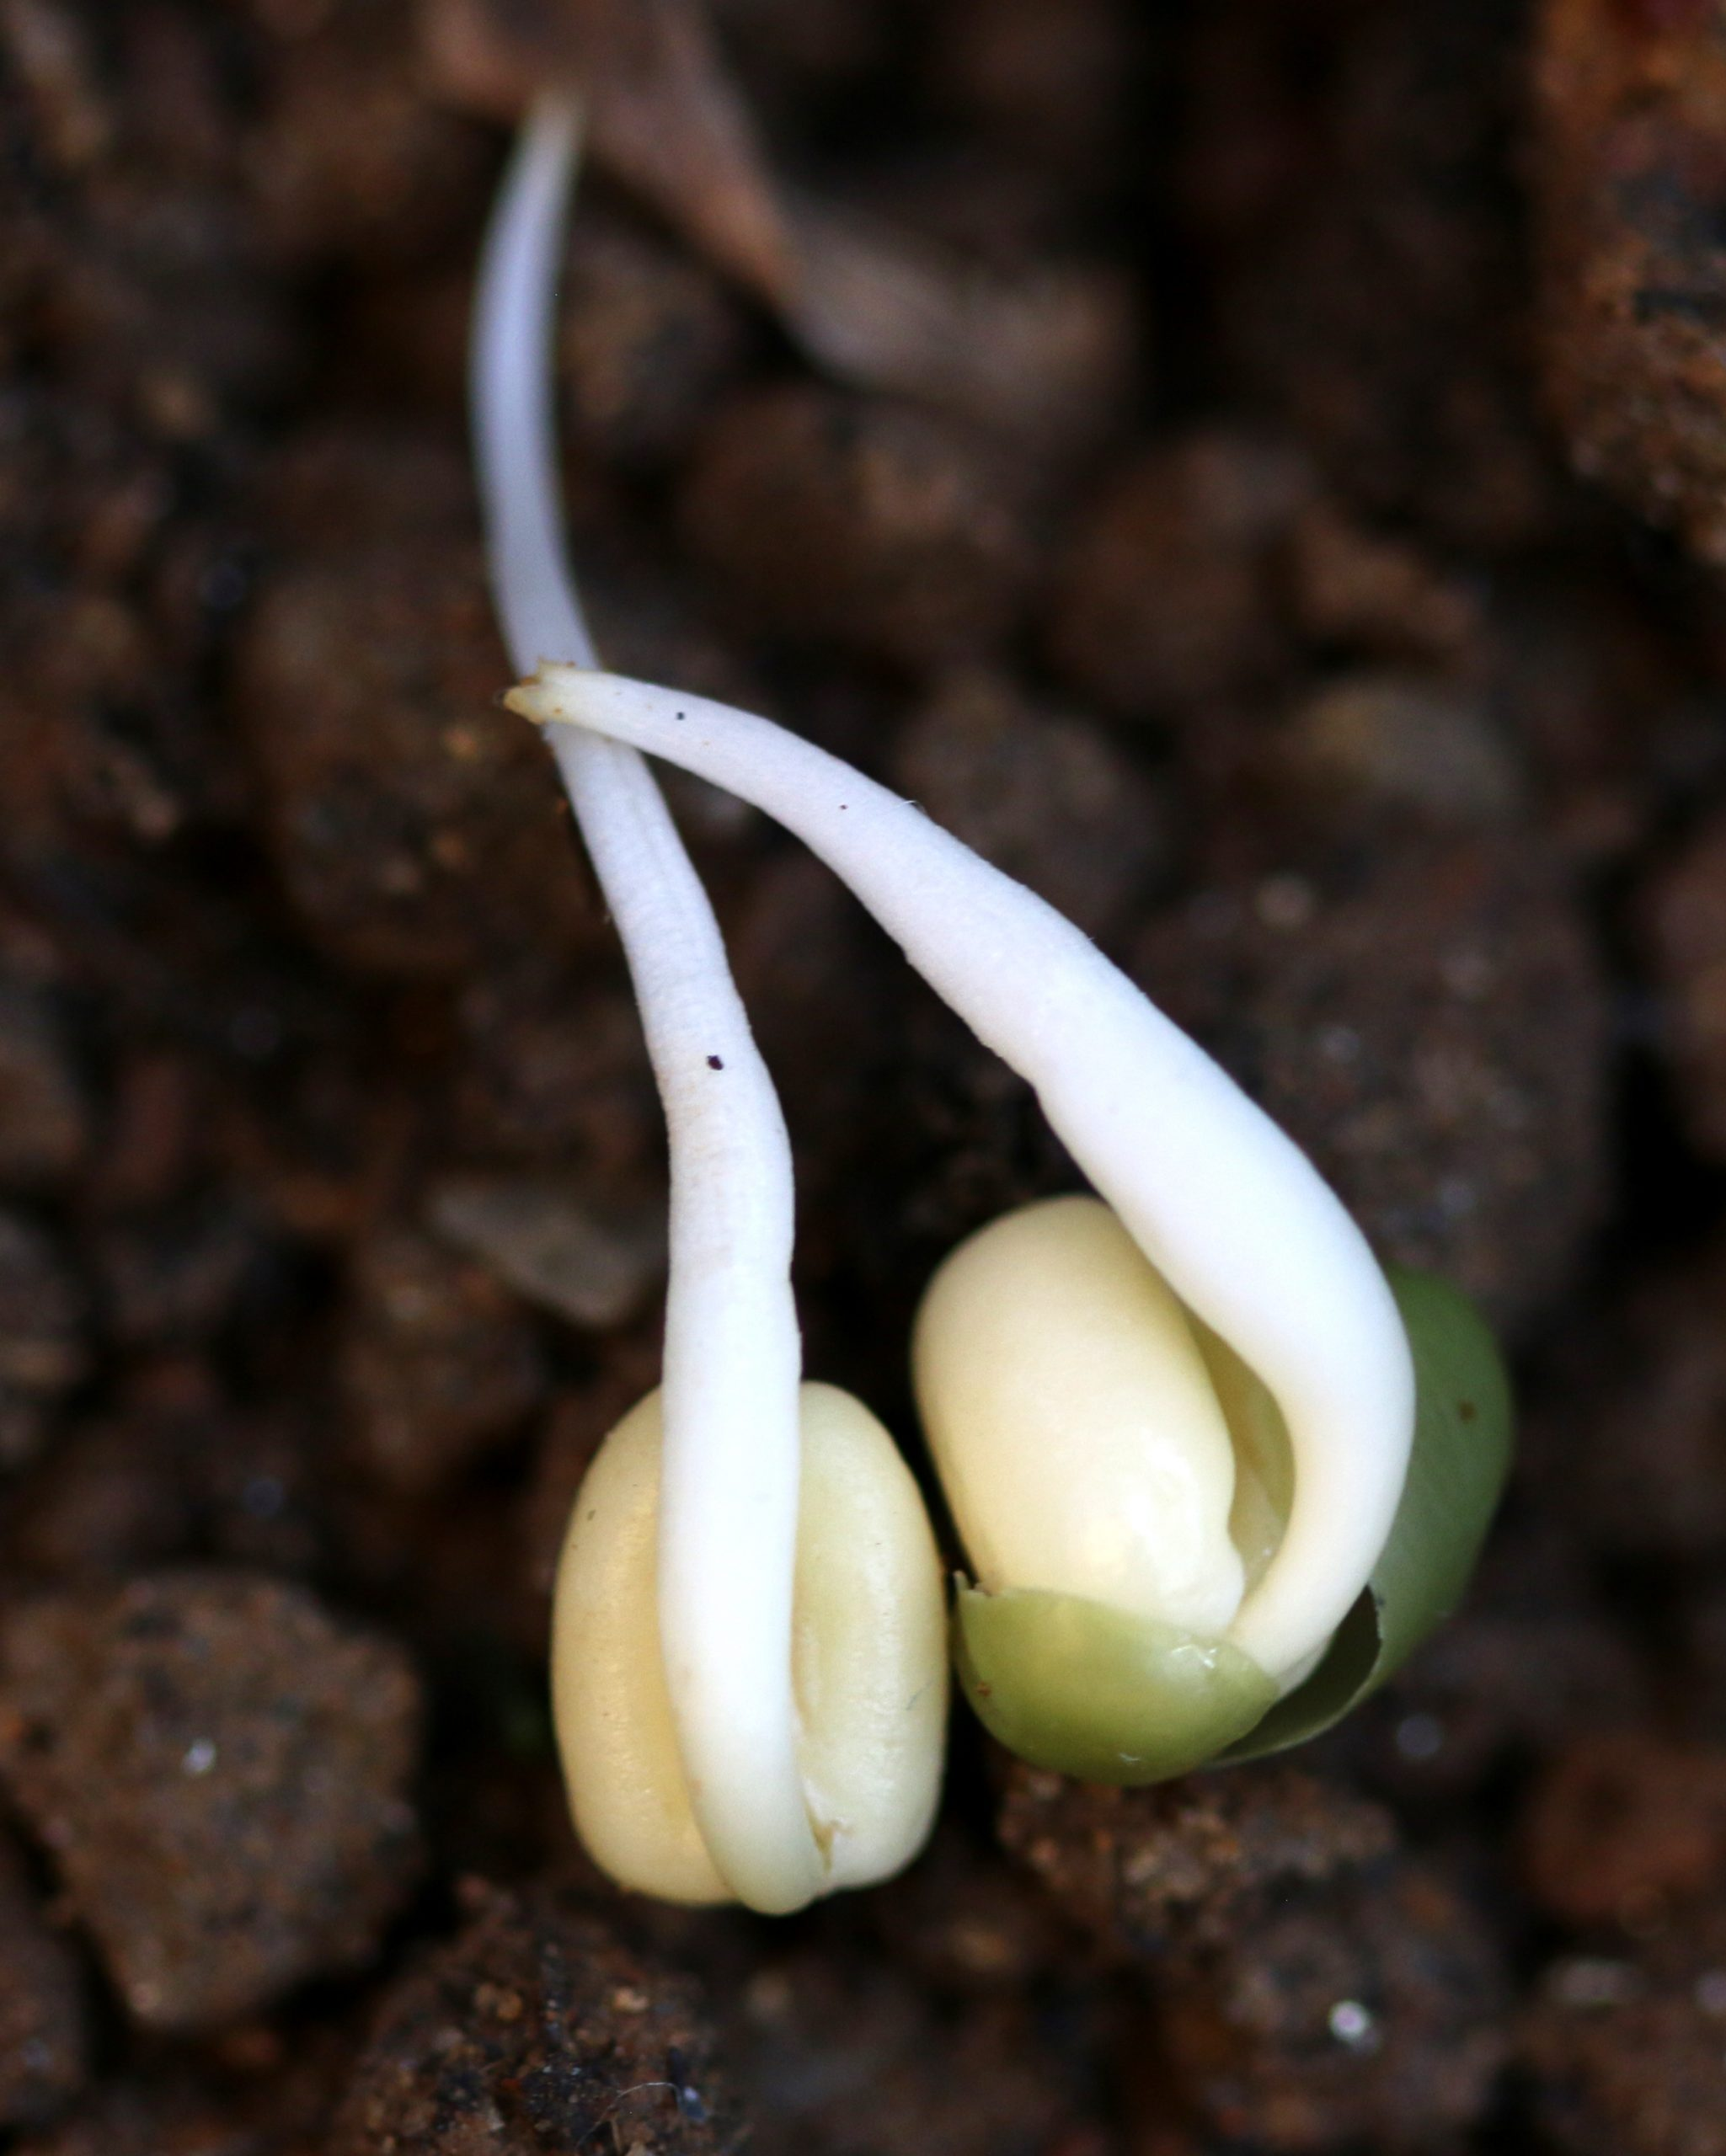 Sprouting of a seeds